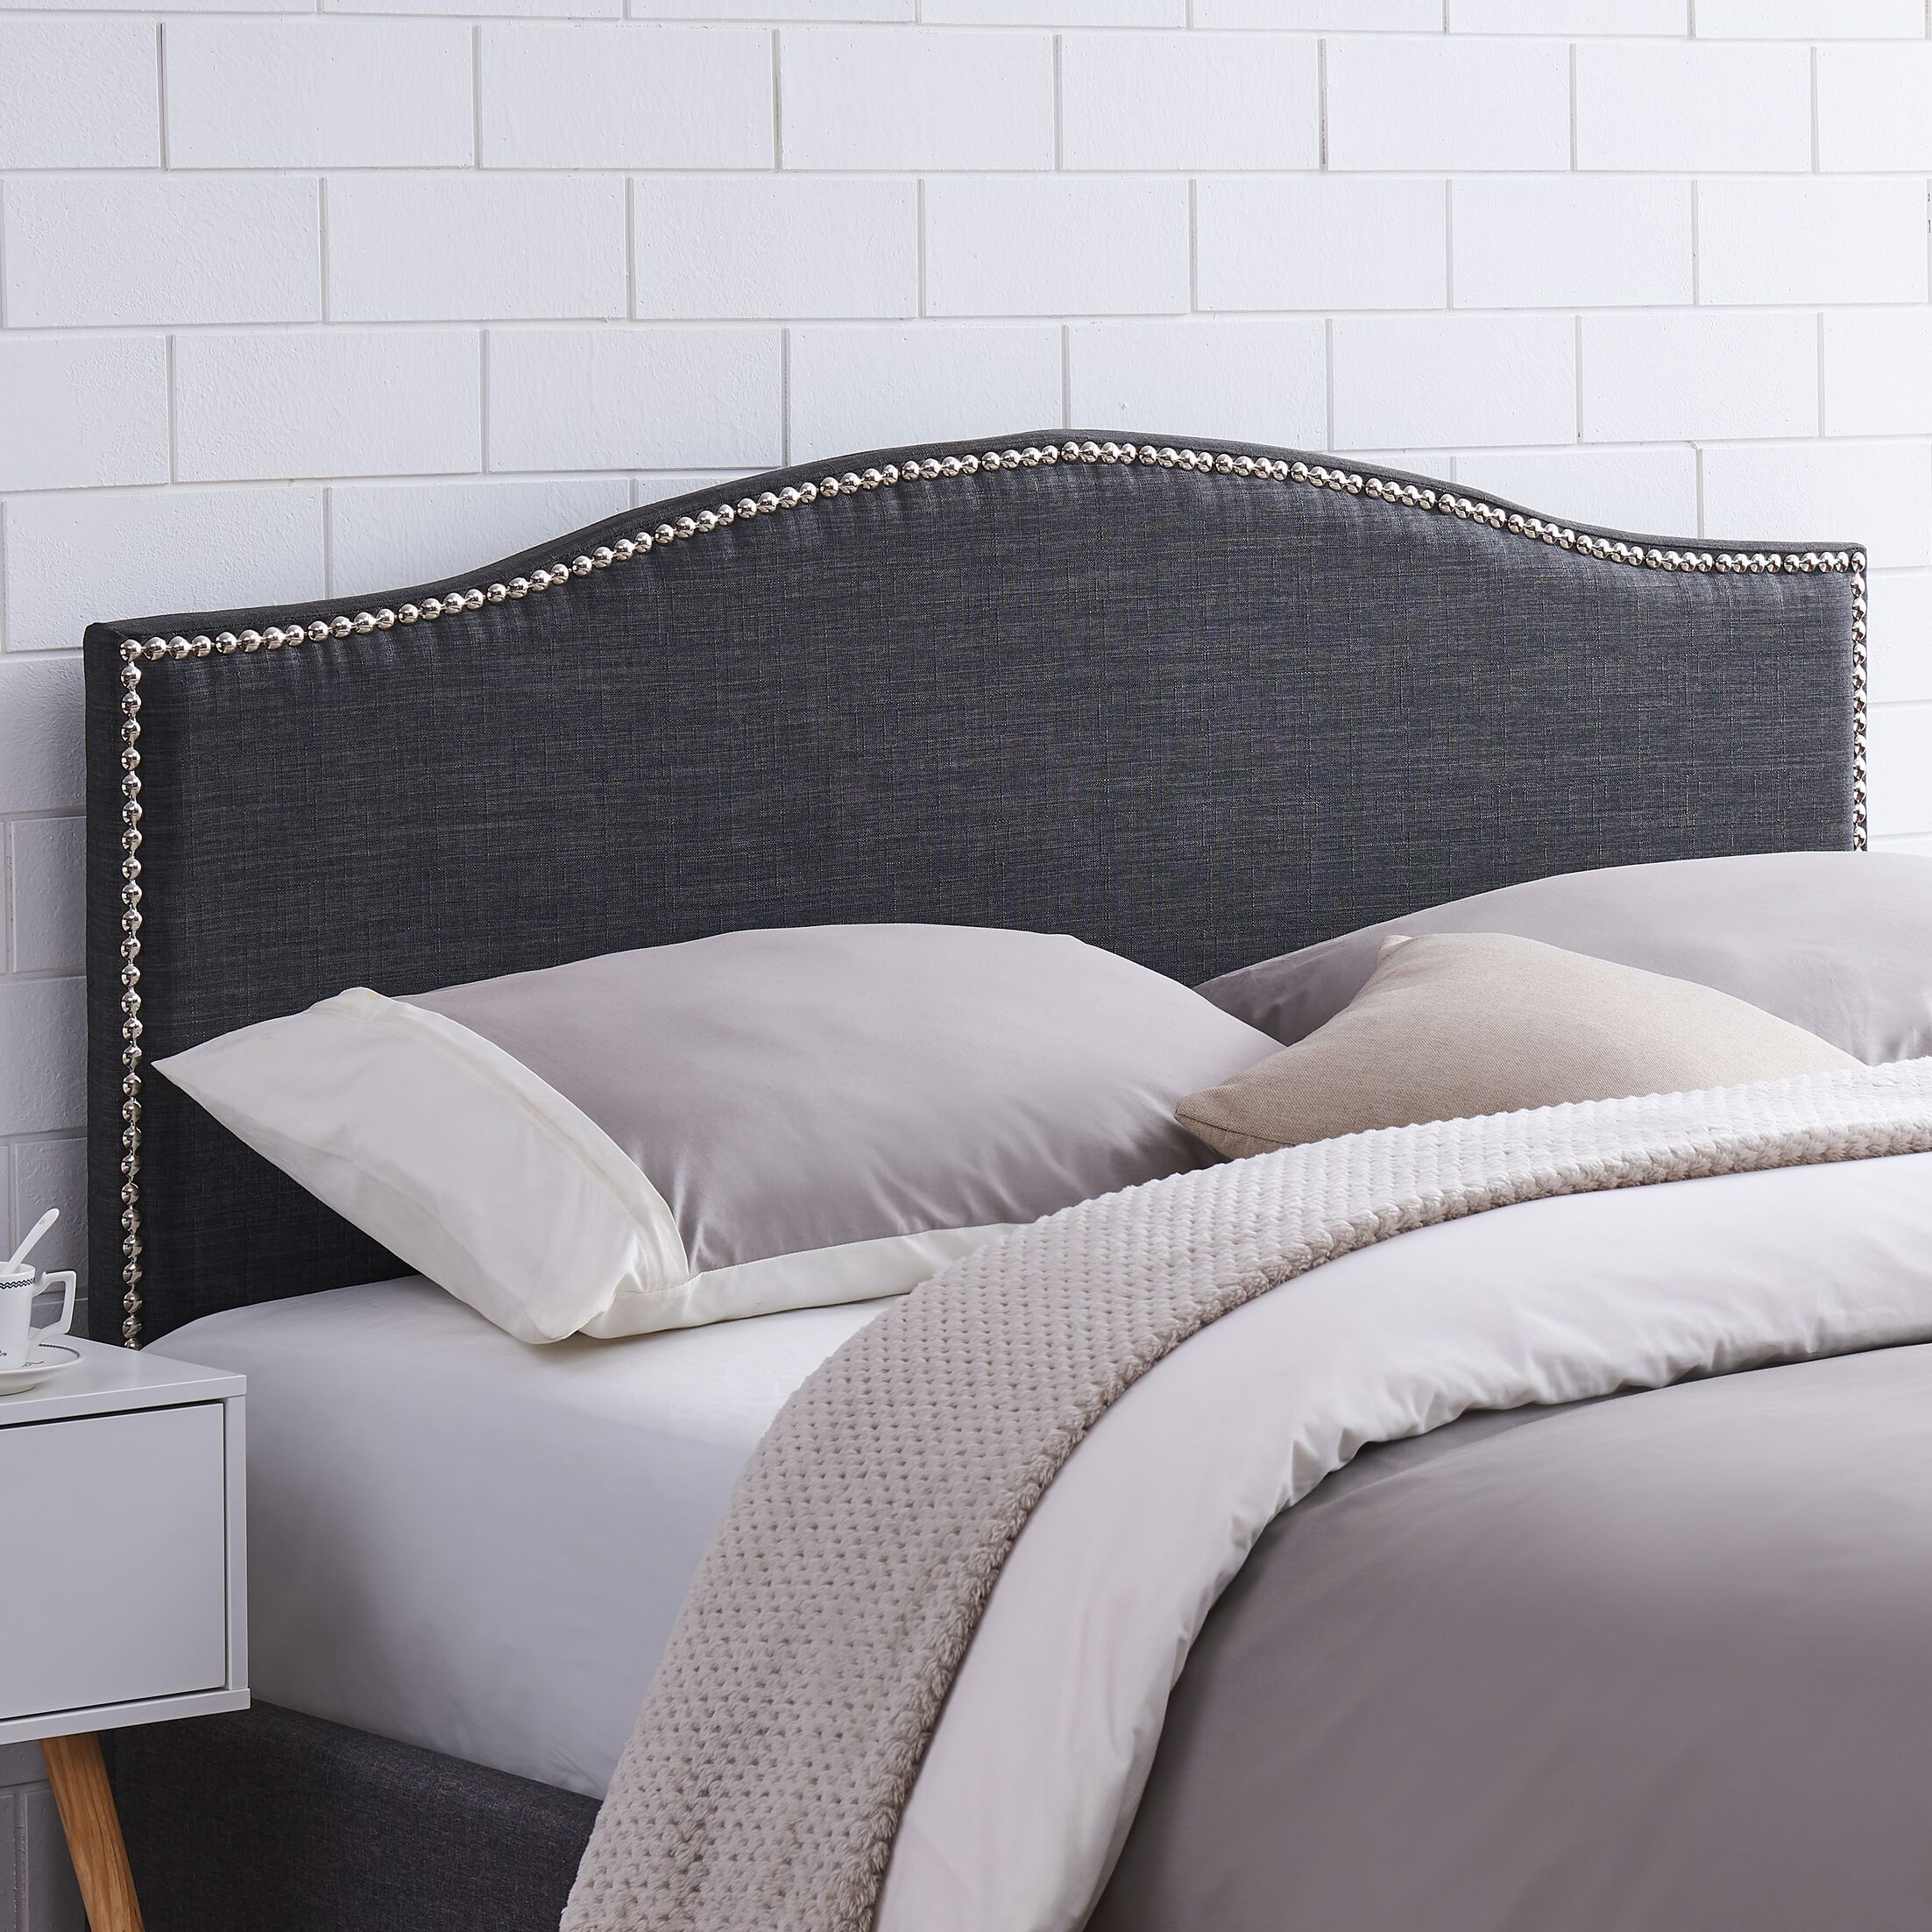 Unger Upholstered Panel Headboard Upholstery: Charcoal, Size: King/California King